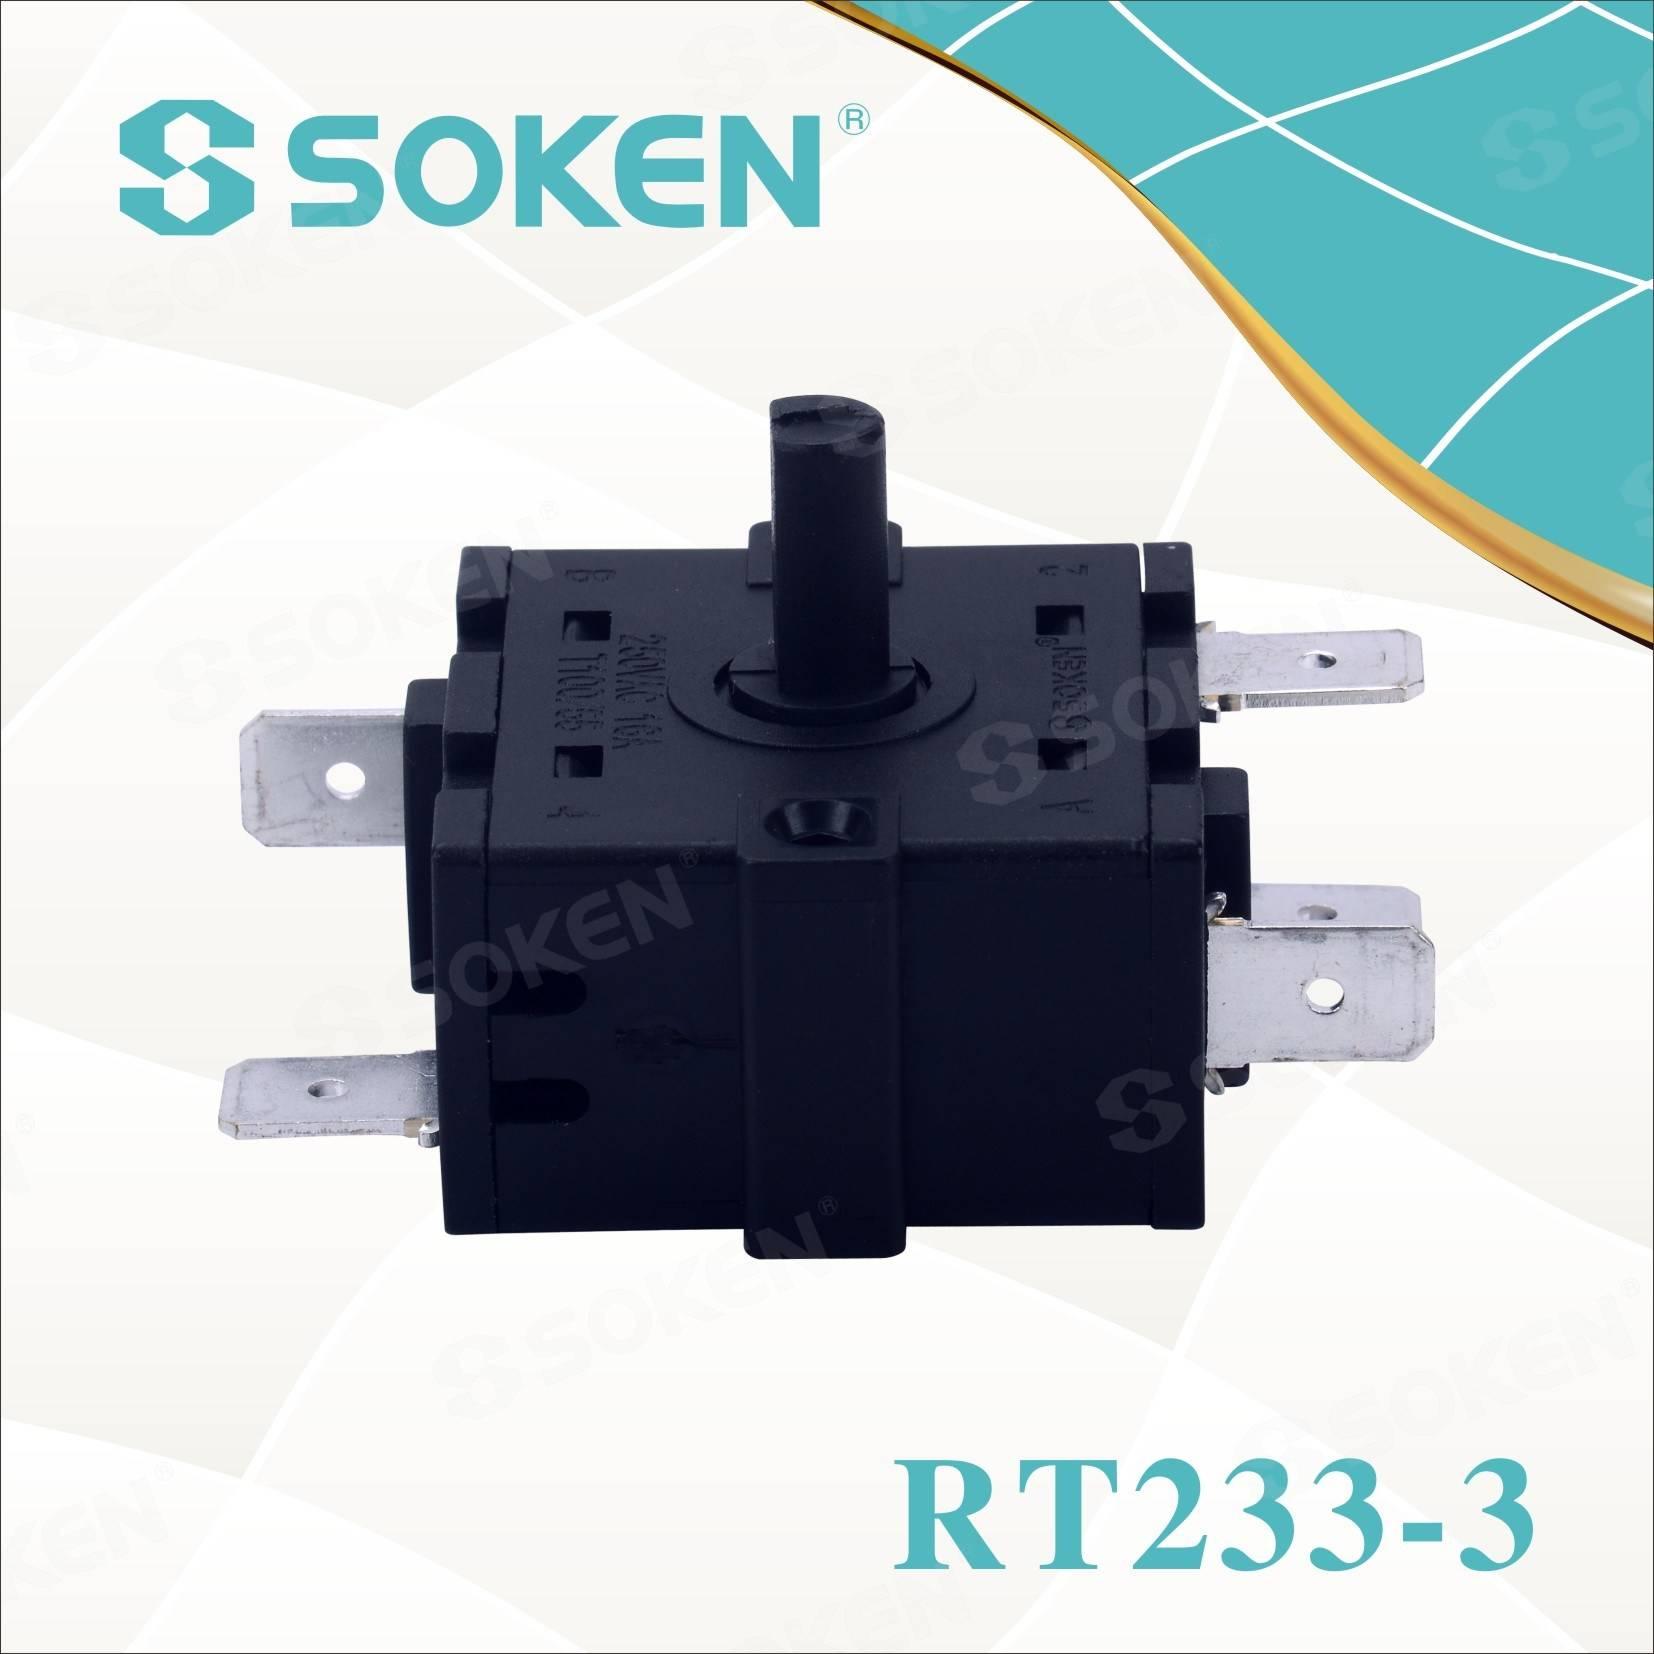 Manufacturing Companies for Kema Switch -